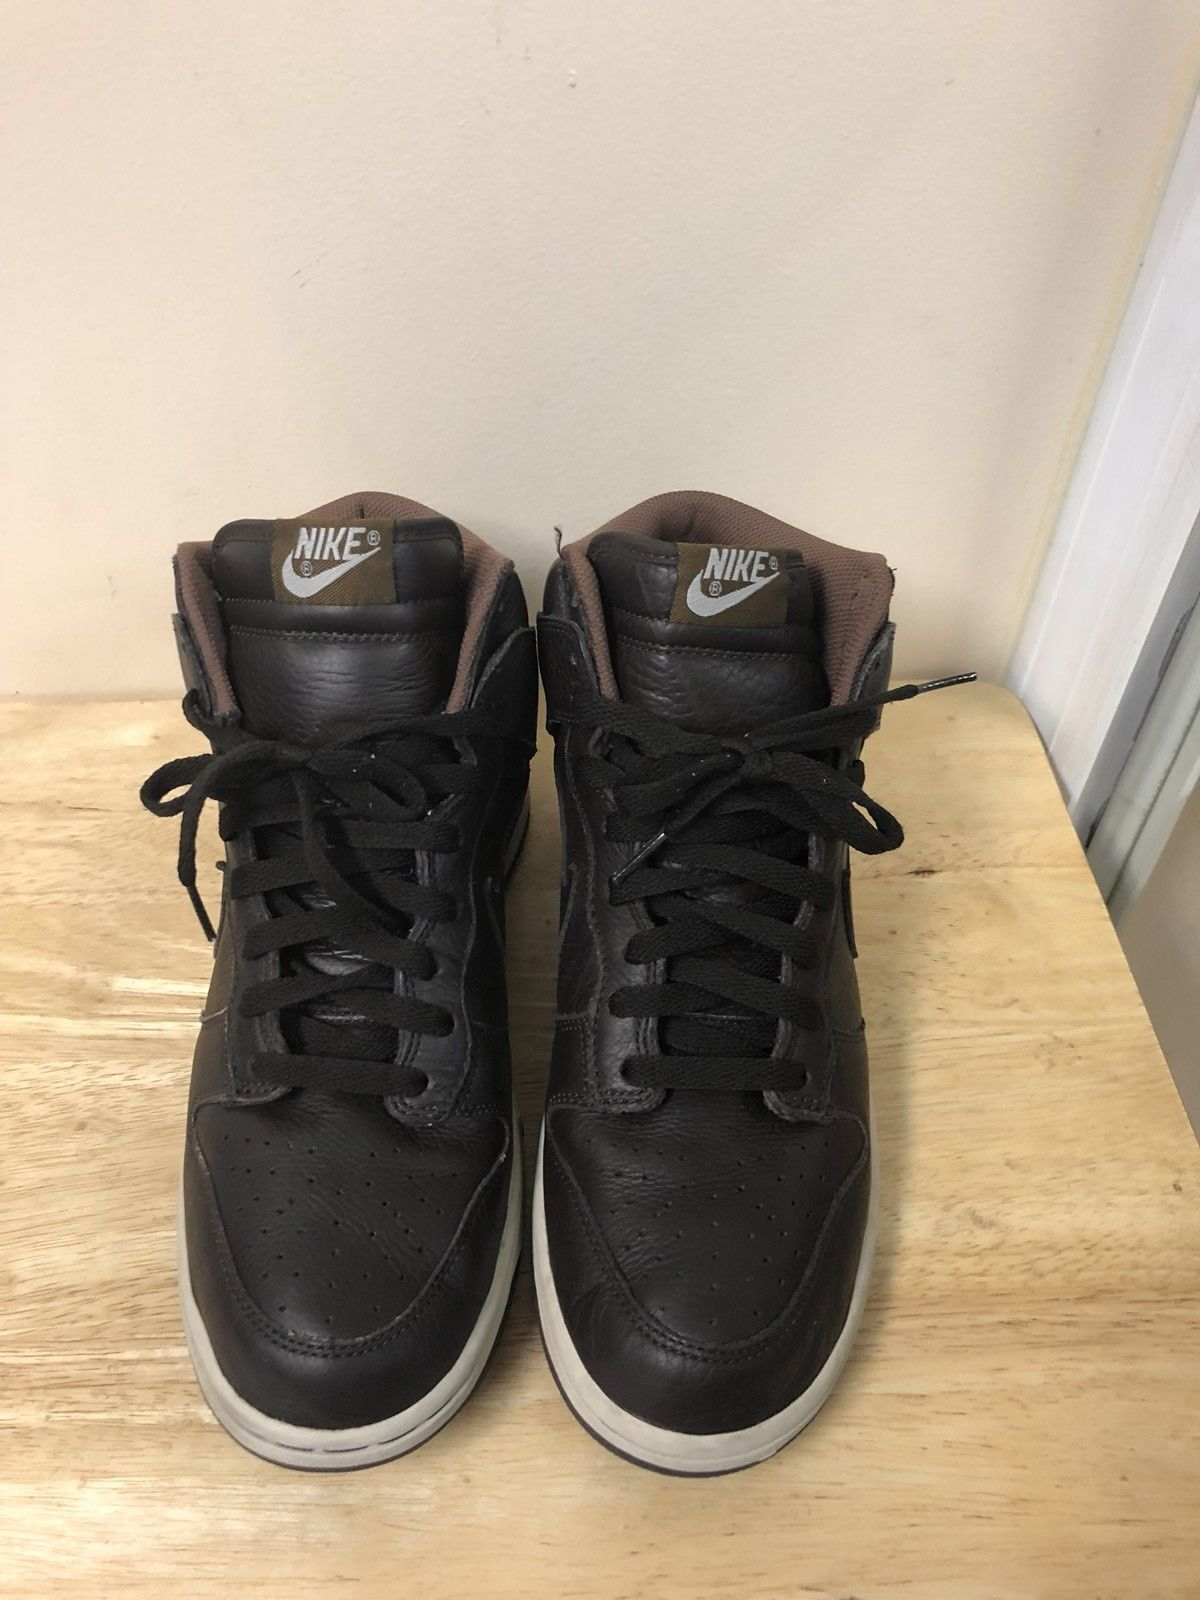 Nike Dunk High Leather Shoes Brown Men Size 10.5 Shoes Leather Sneakers 312786-222 fa864a